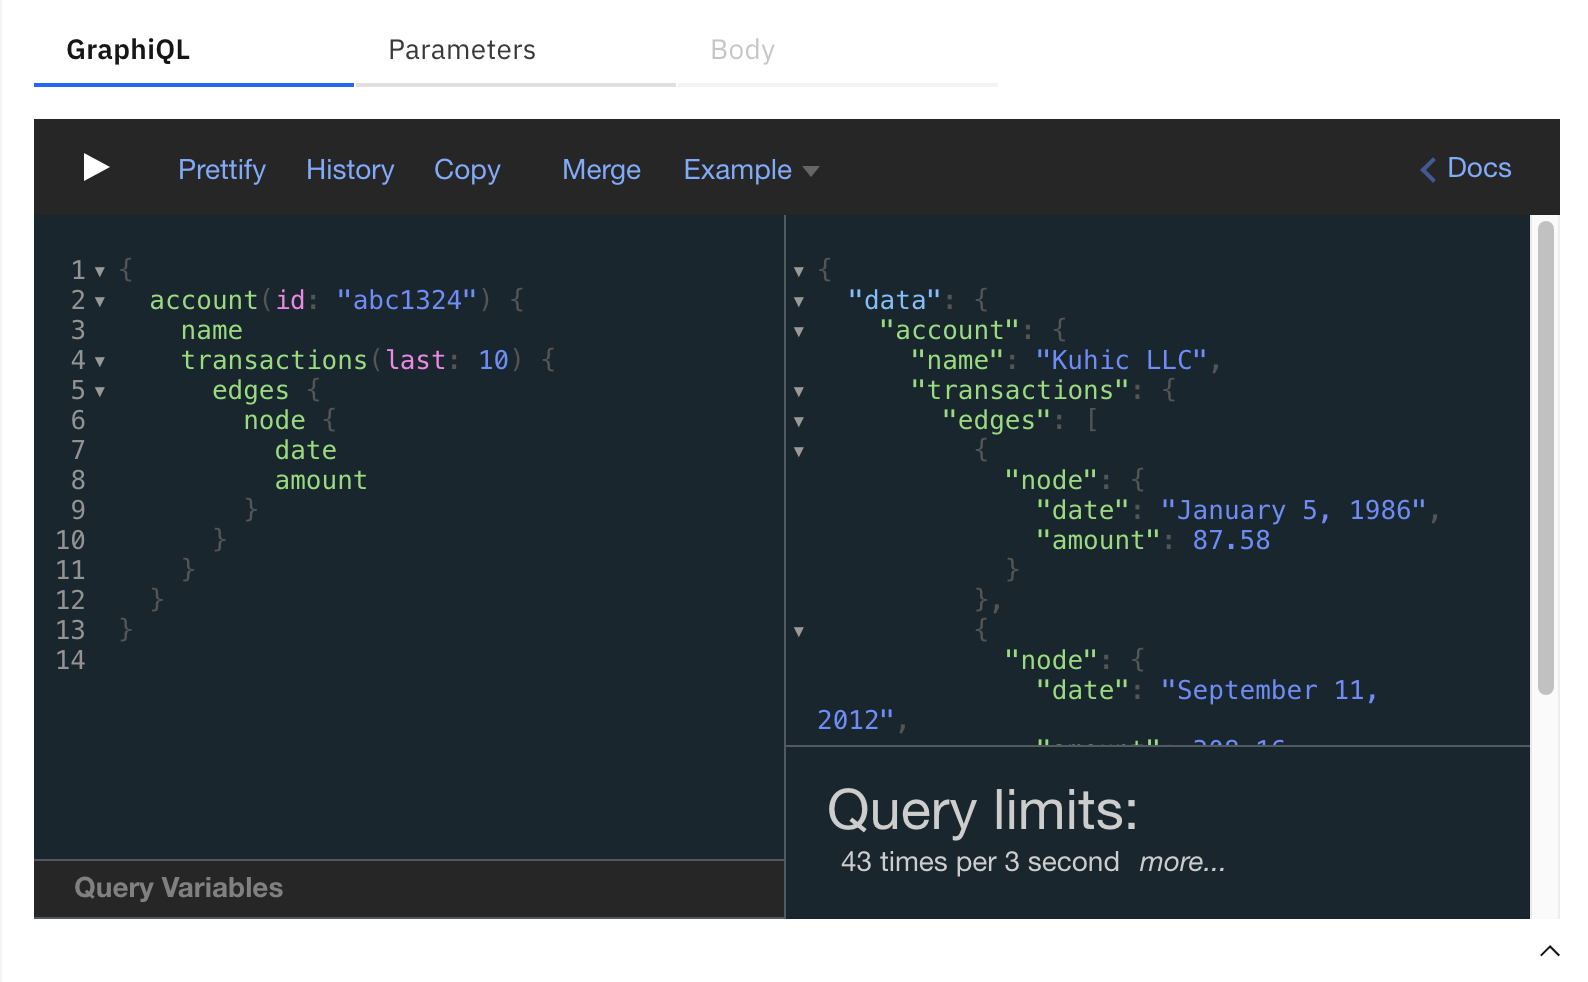 GraphiQL with medium GraphQL query limited to 43 transactions per 3 seconds